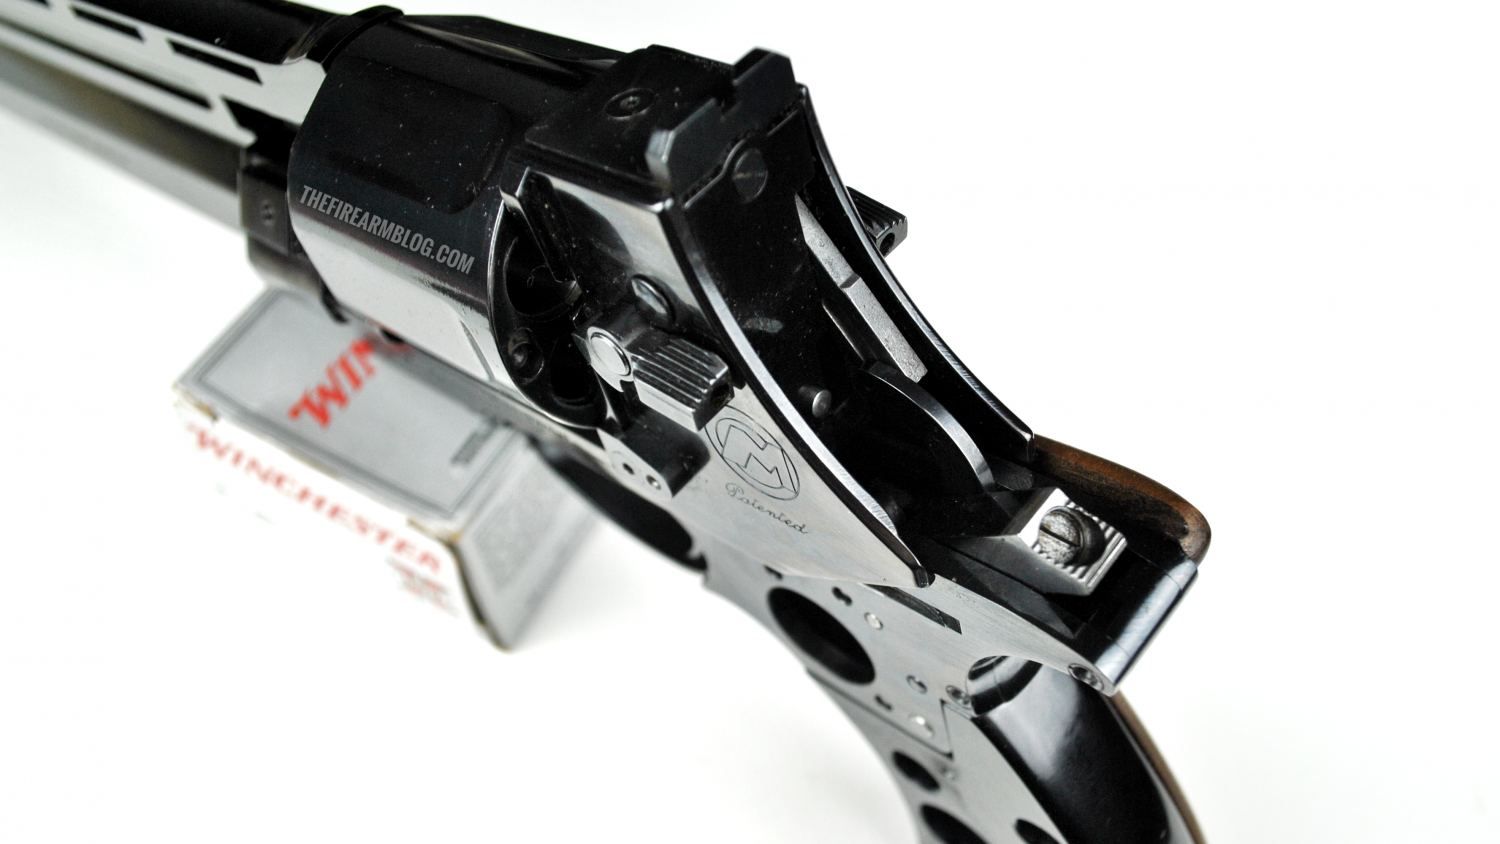 MATEBA Autorevolver .454, details of the mechanical elements controlling the cycle.